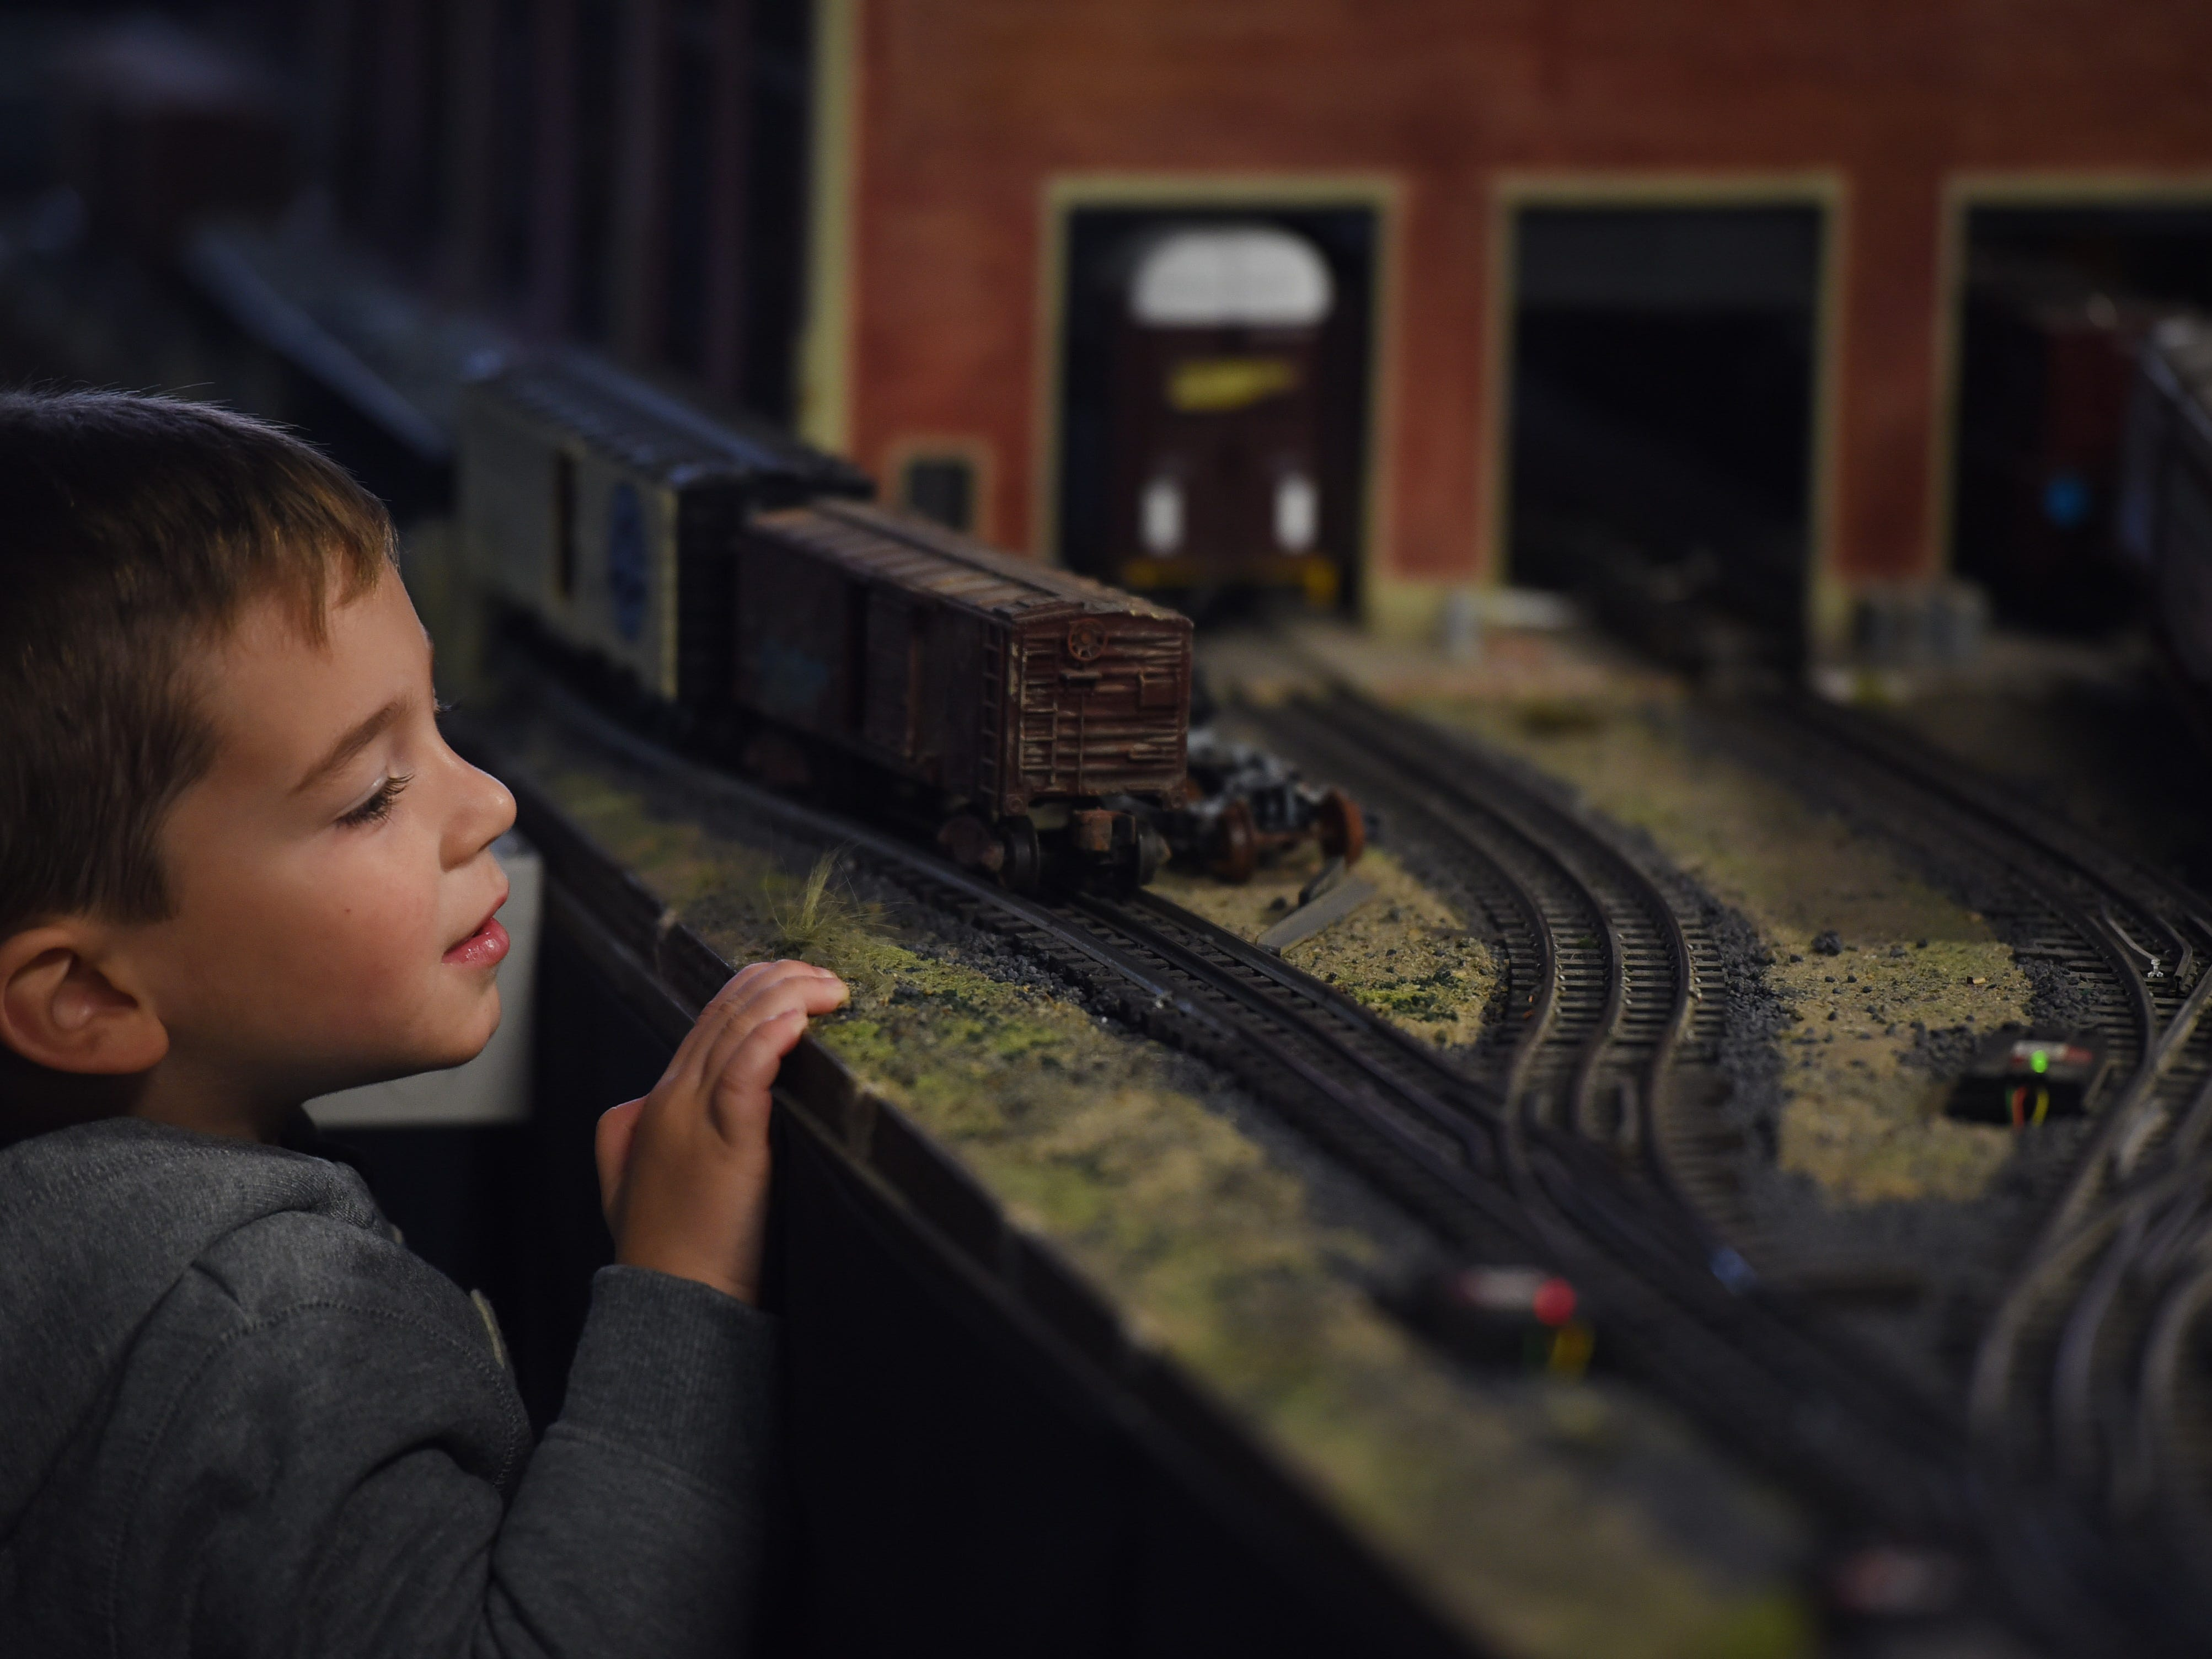 George gets a closer look at part of the model train layout.